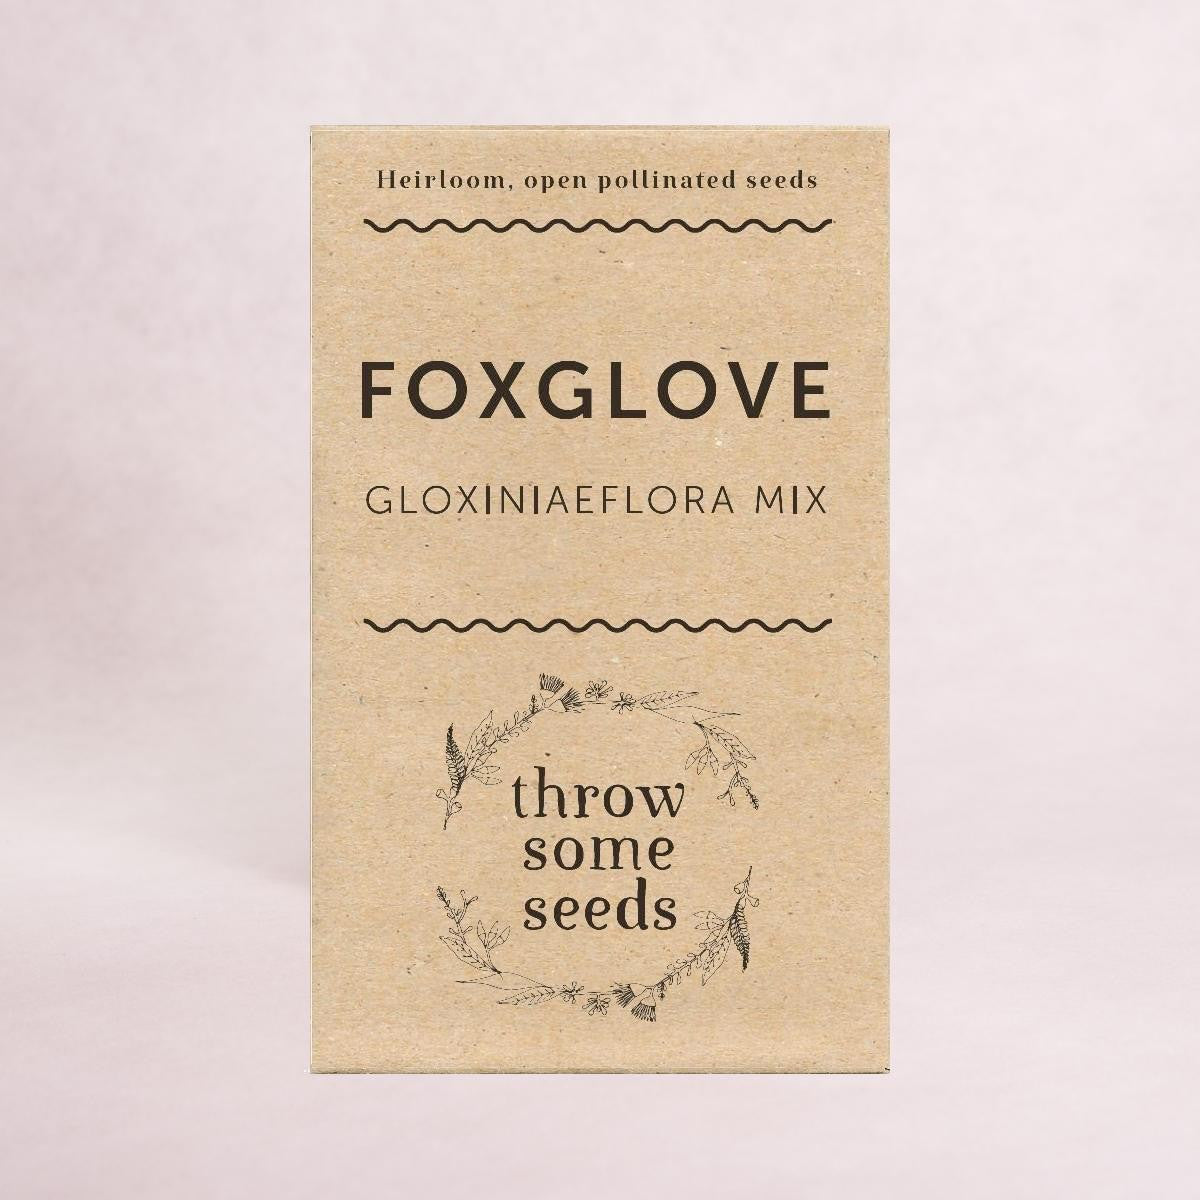 Foxglove (Gloxiniaeflora Mix) Seeds - Seeds - Throw Some Seeds - Australian gardening gifts and eco products online!